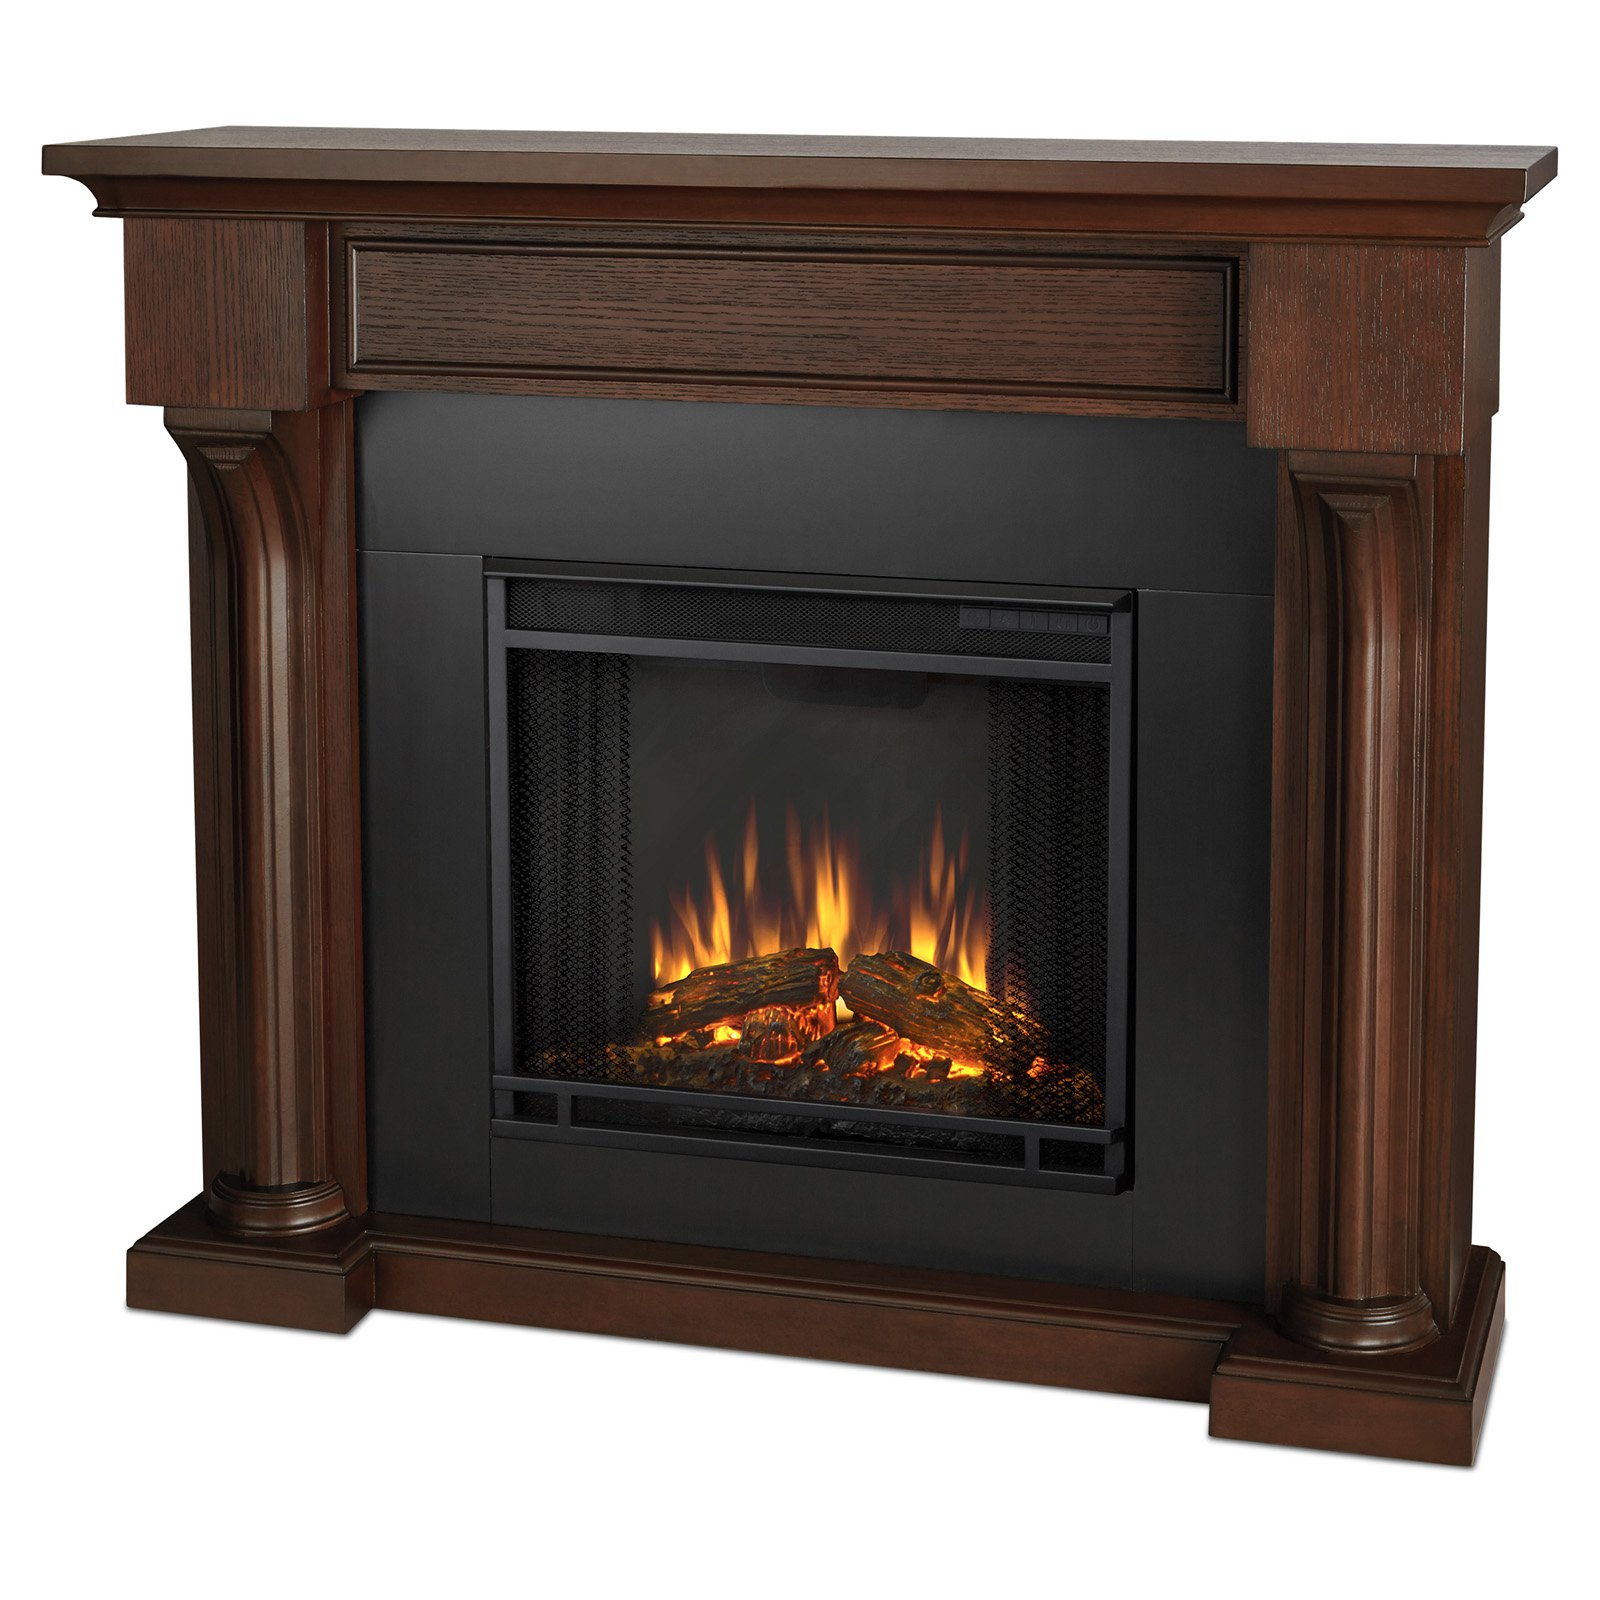 Real Flame Verona Electric Fireplace